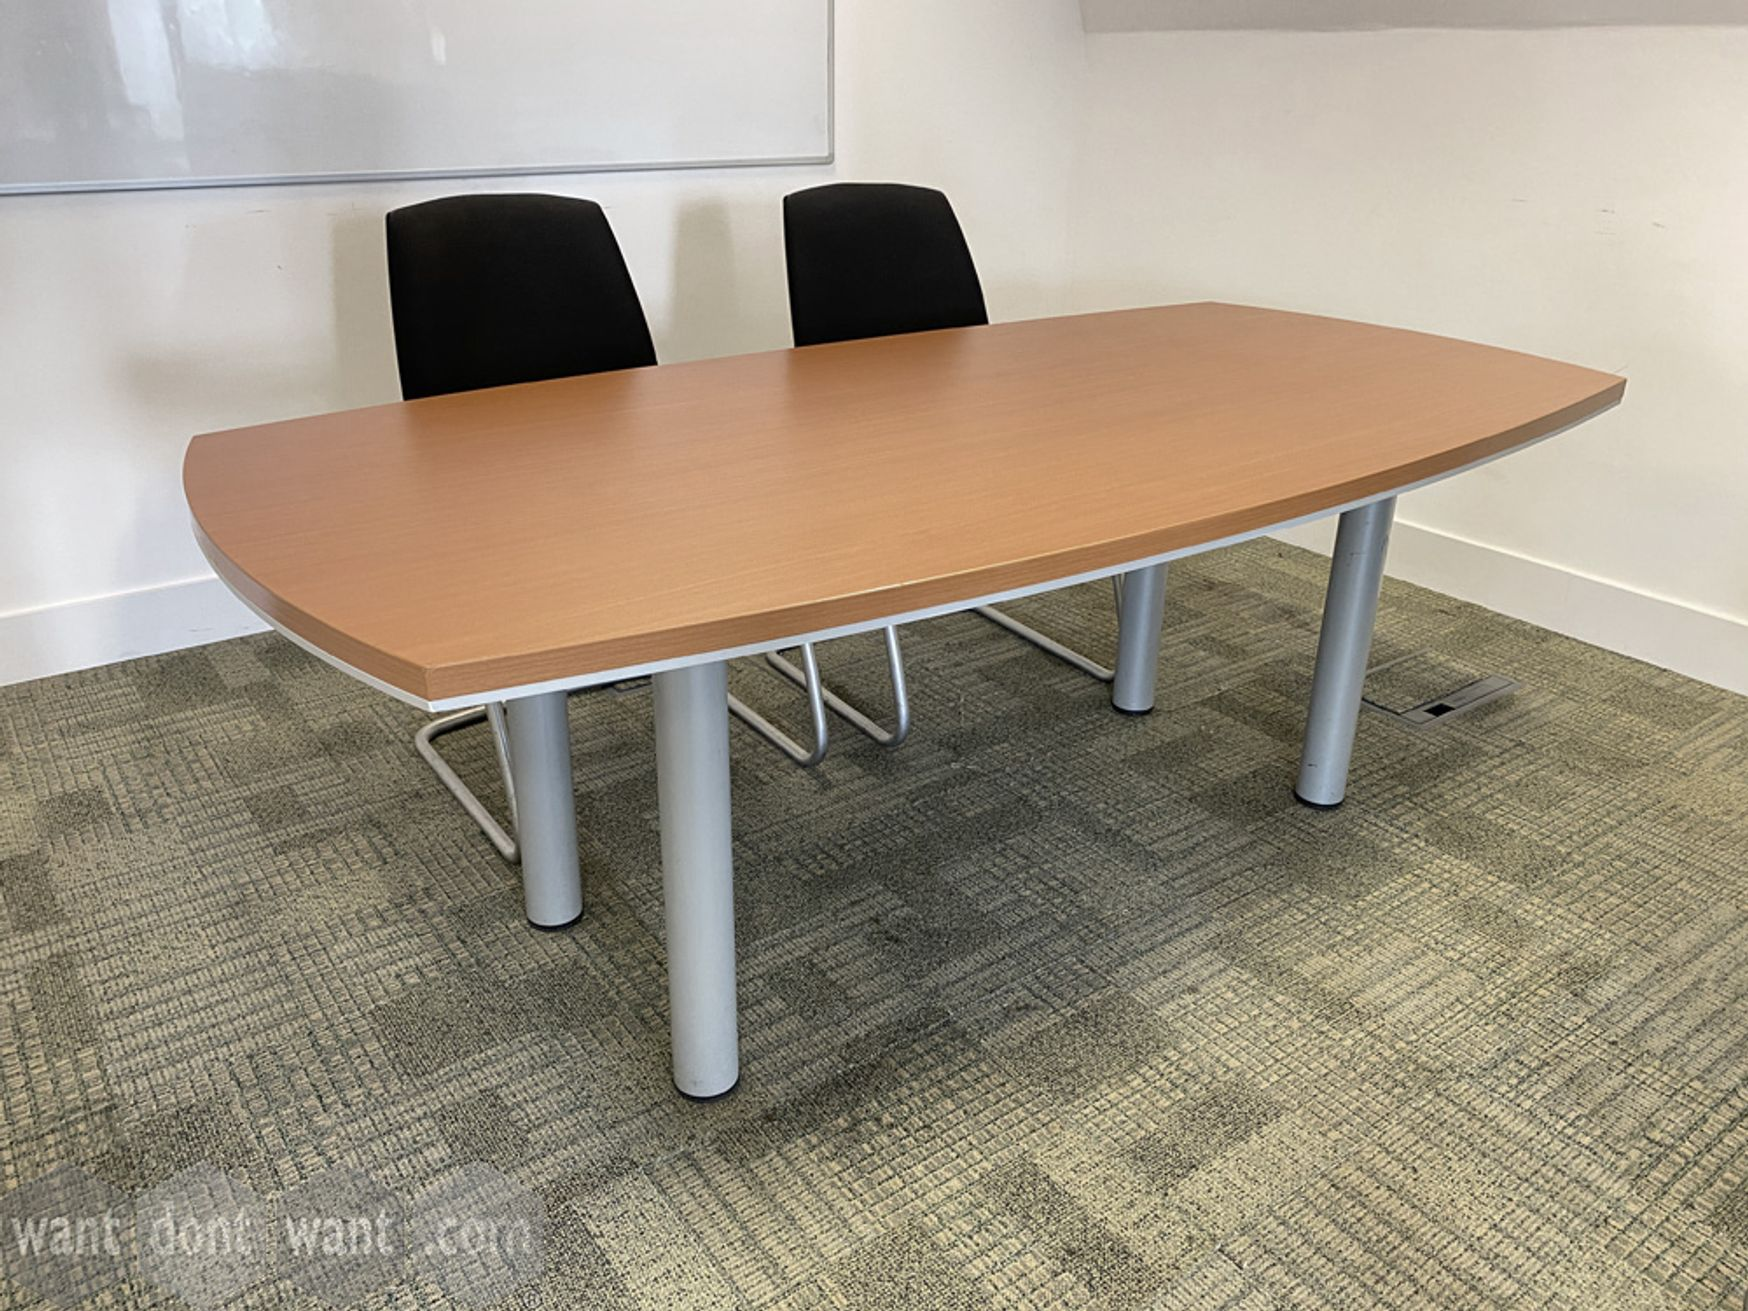 Used meeting table with grey tubular legs: 2000mm wide x 1000mm deep.